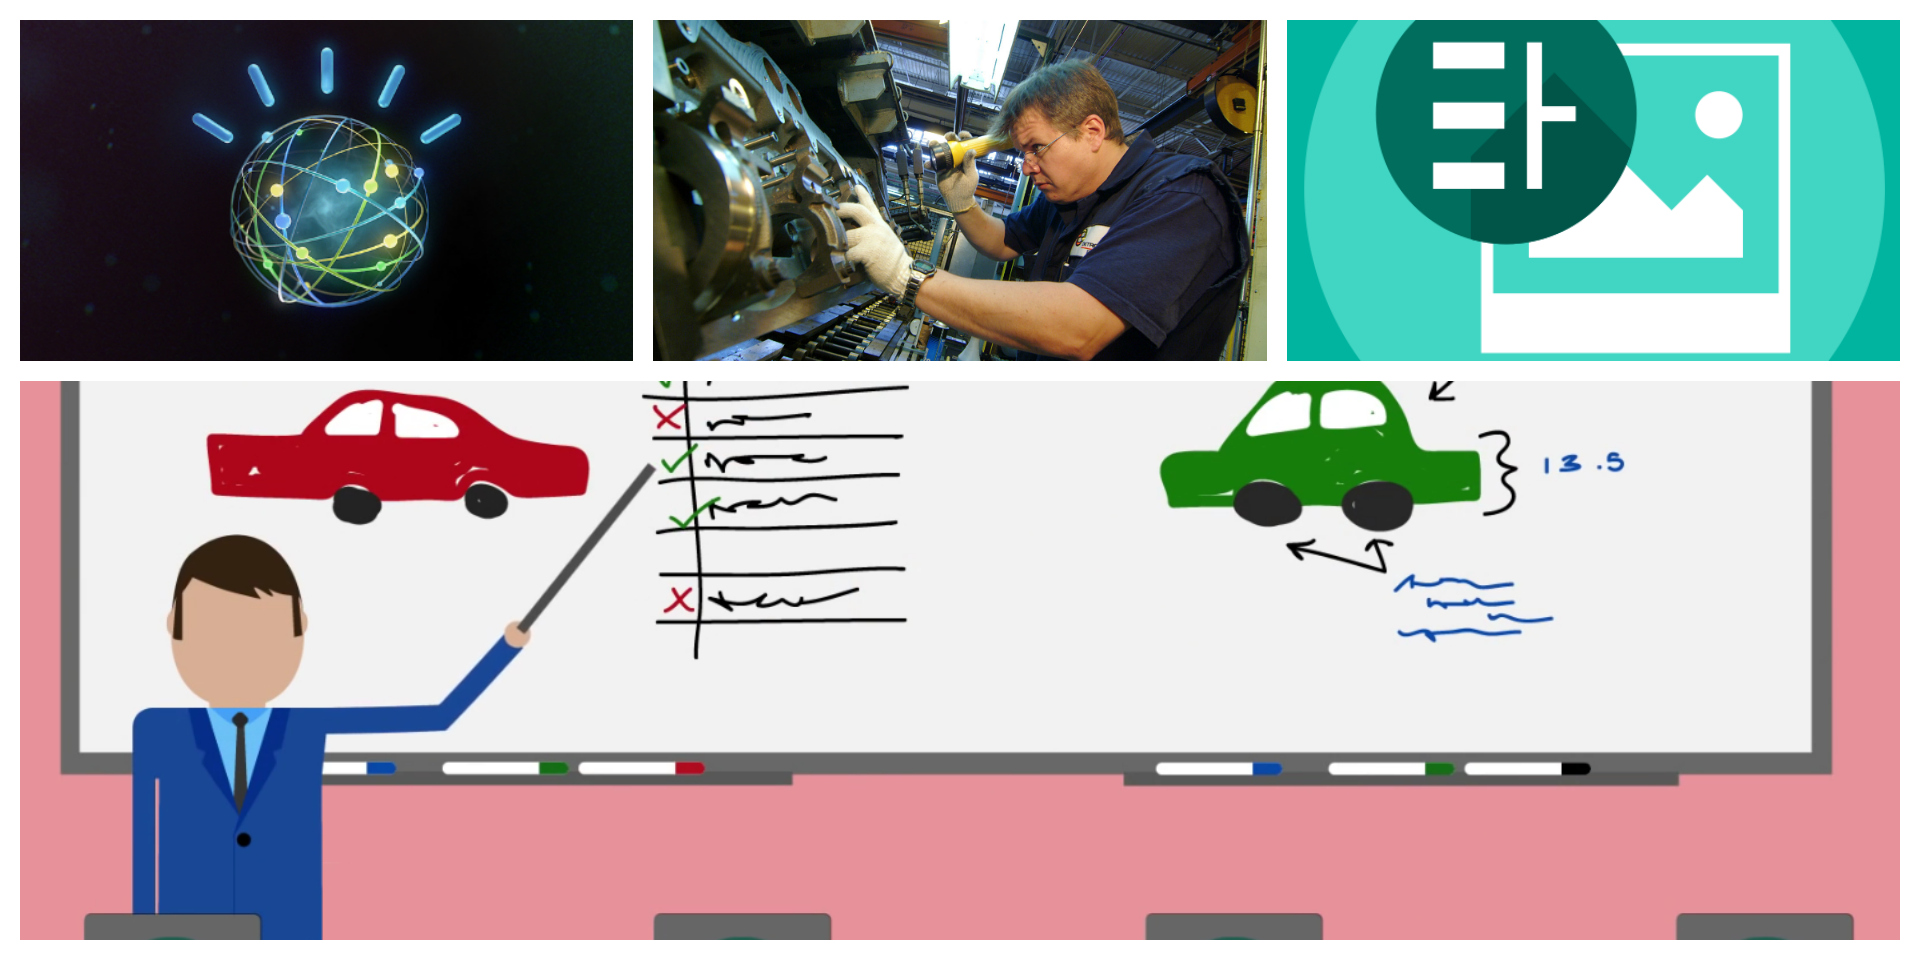 Watson visual recognition for quality control in production lines